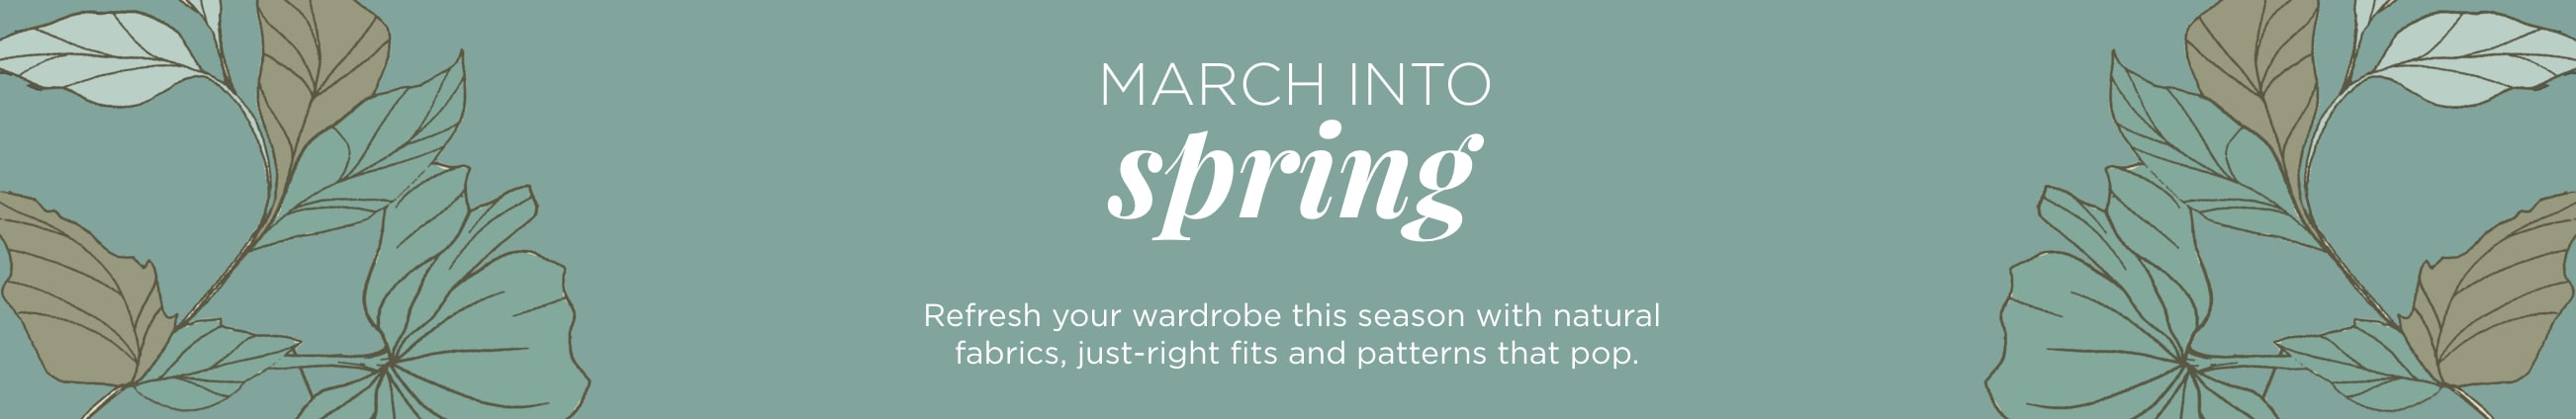 March into Spring. Refresh your wardrobe this season with natural fabrics, just-right fits, and patterns that pop.